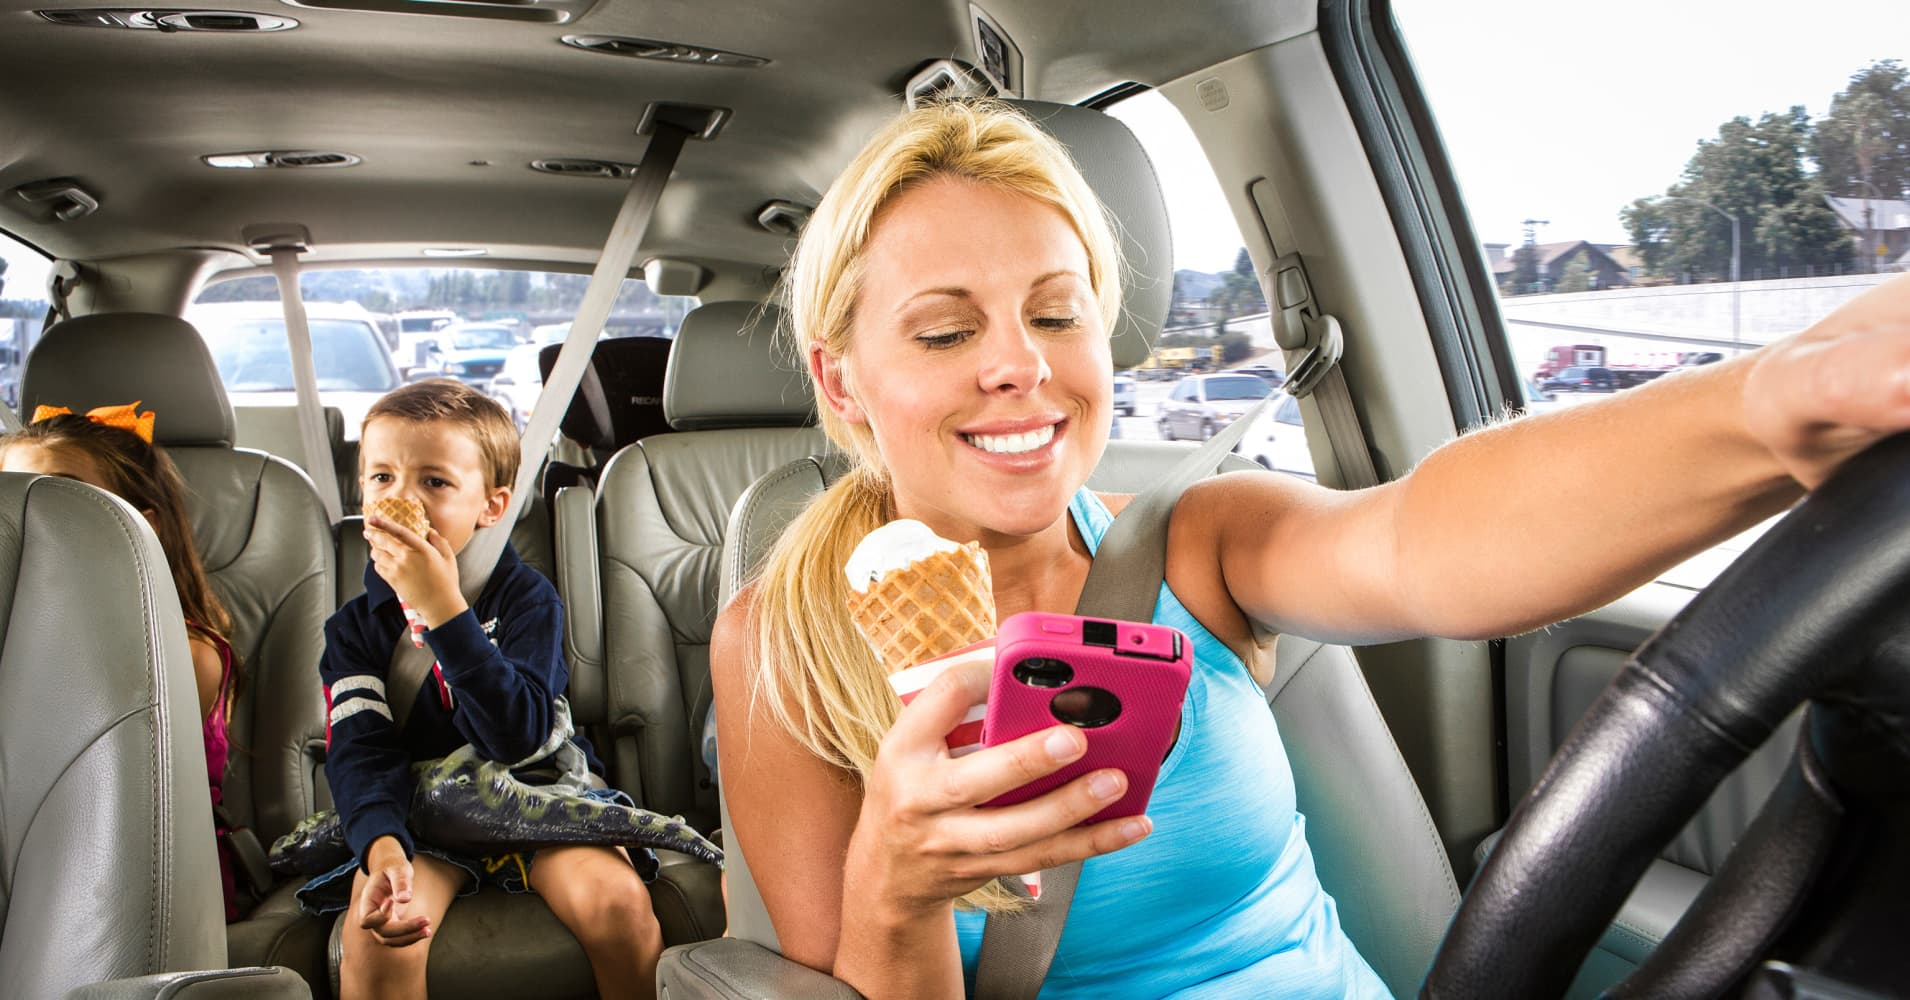 eating while driving Eating while driving is a dangerous form of distracted driving that can impair drivers' ability to recognize and respond to possible roadway hazards.